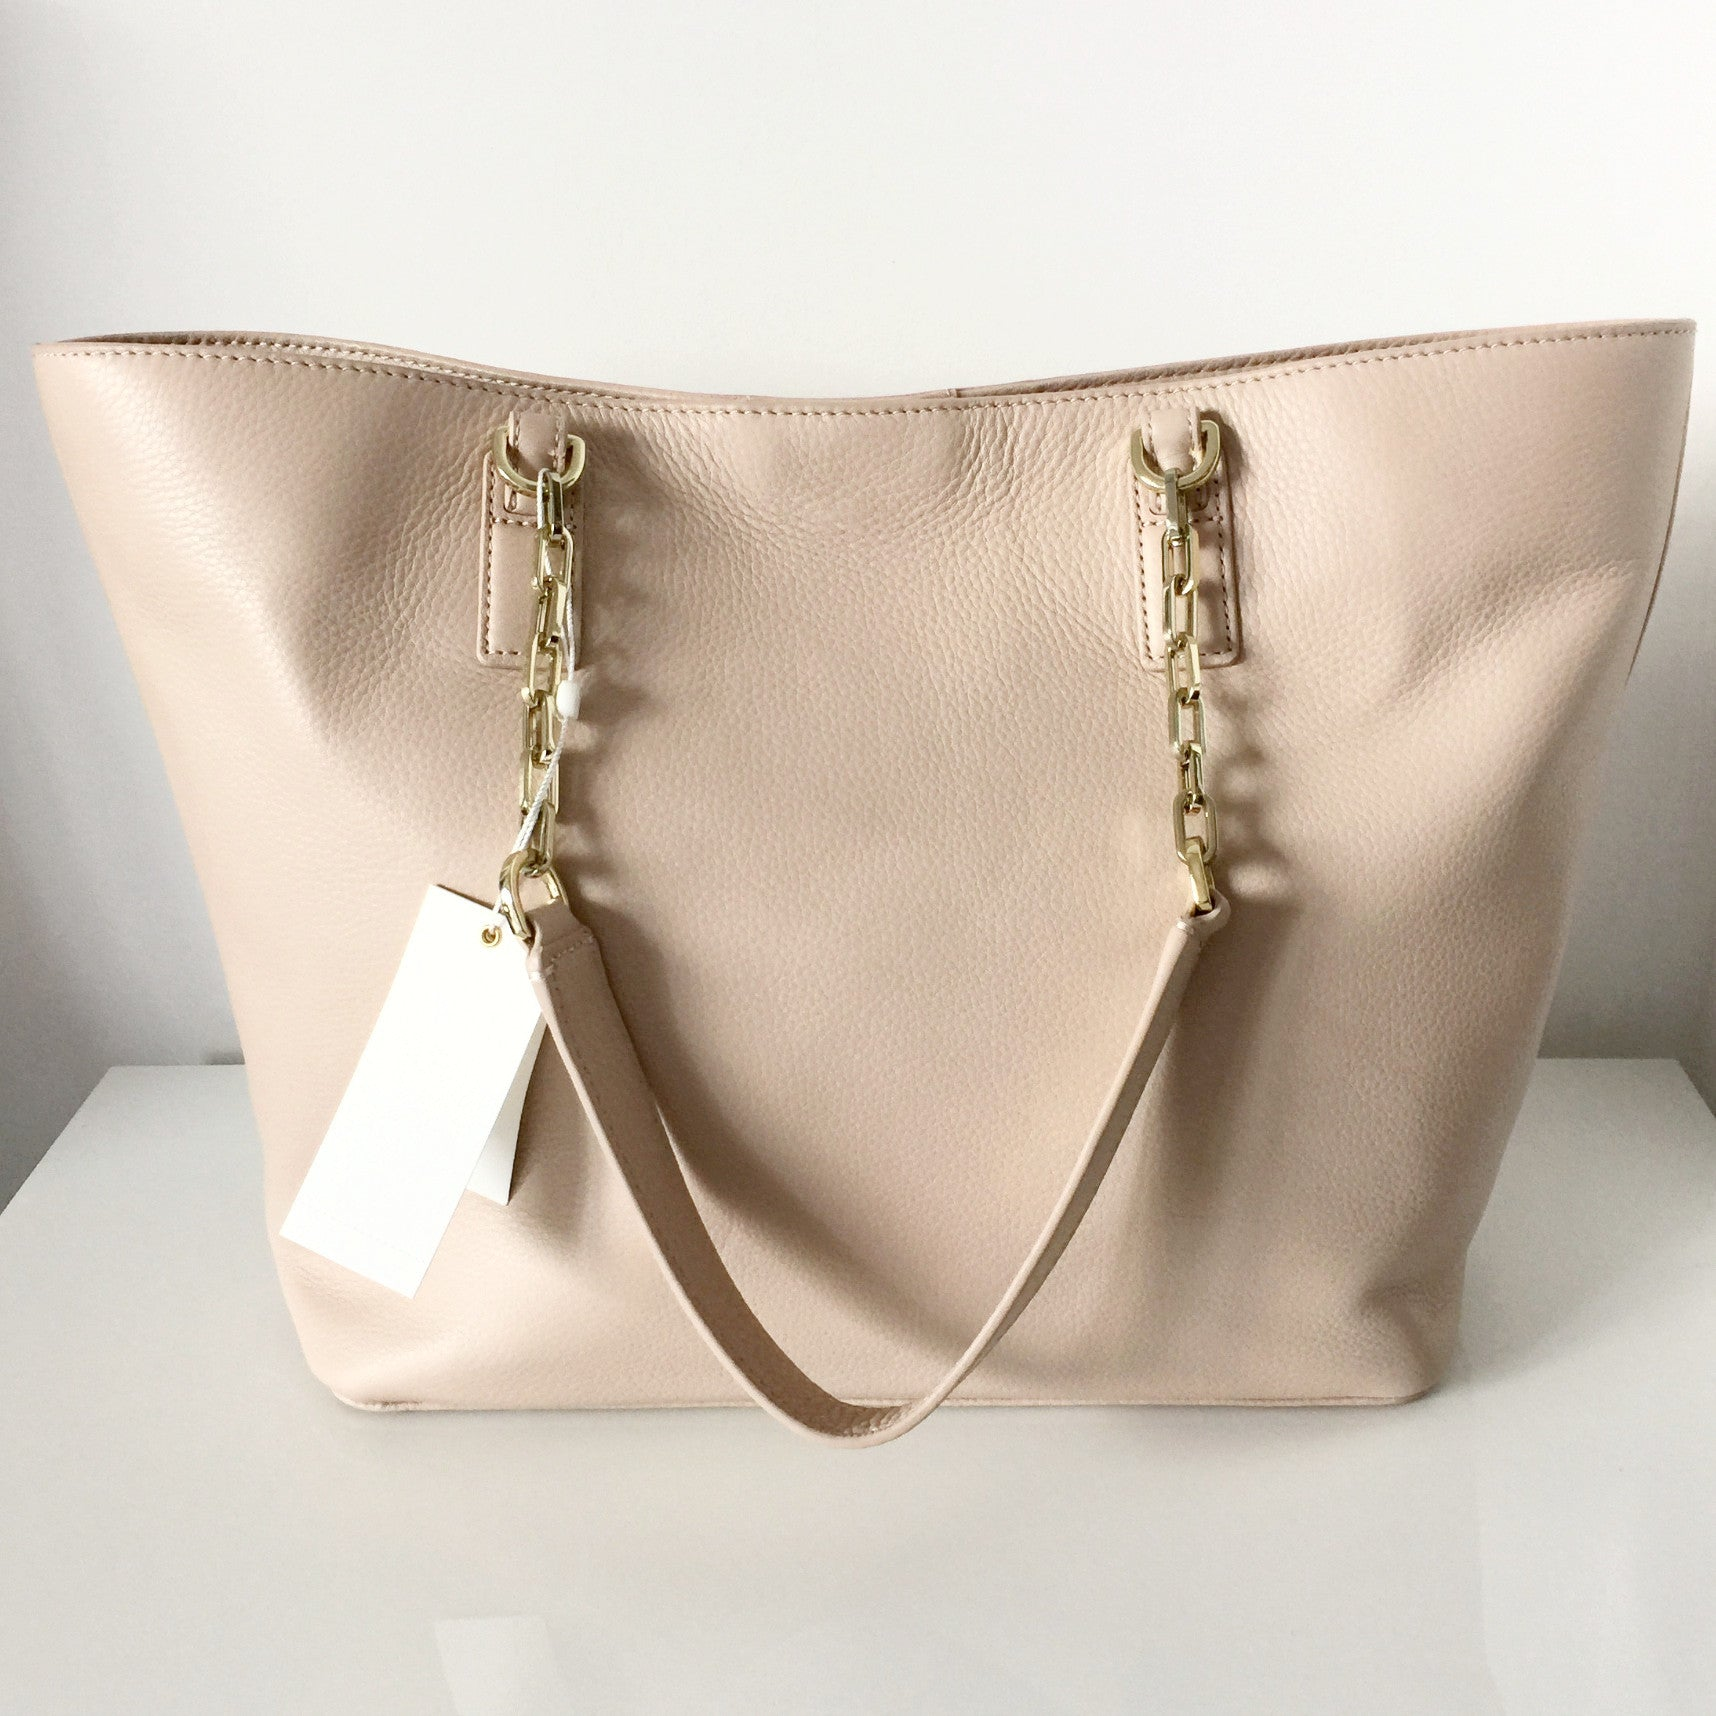 Authentic TORY BURCH Mercer Tote Blush